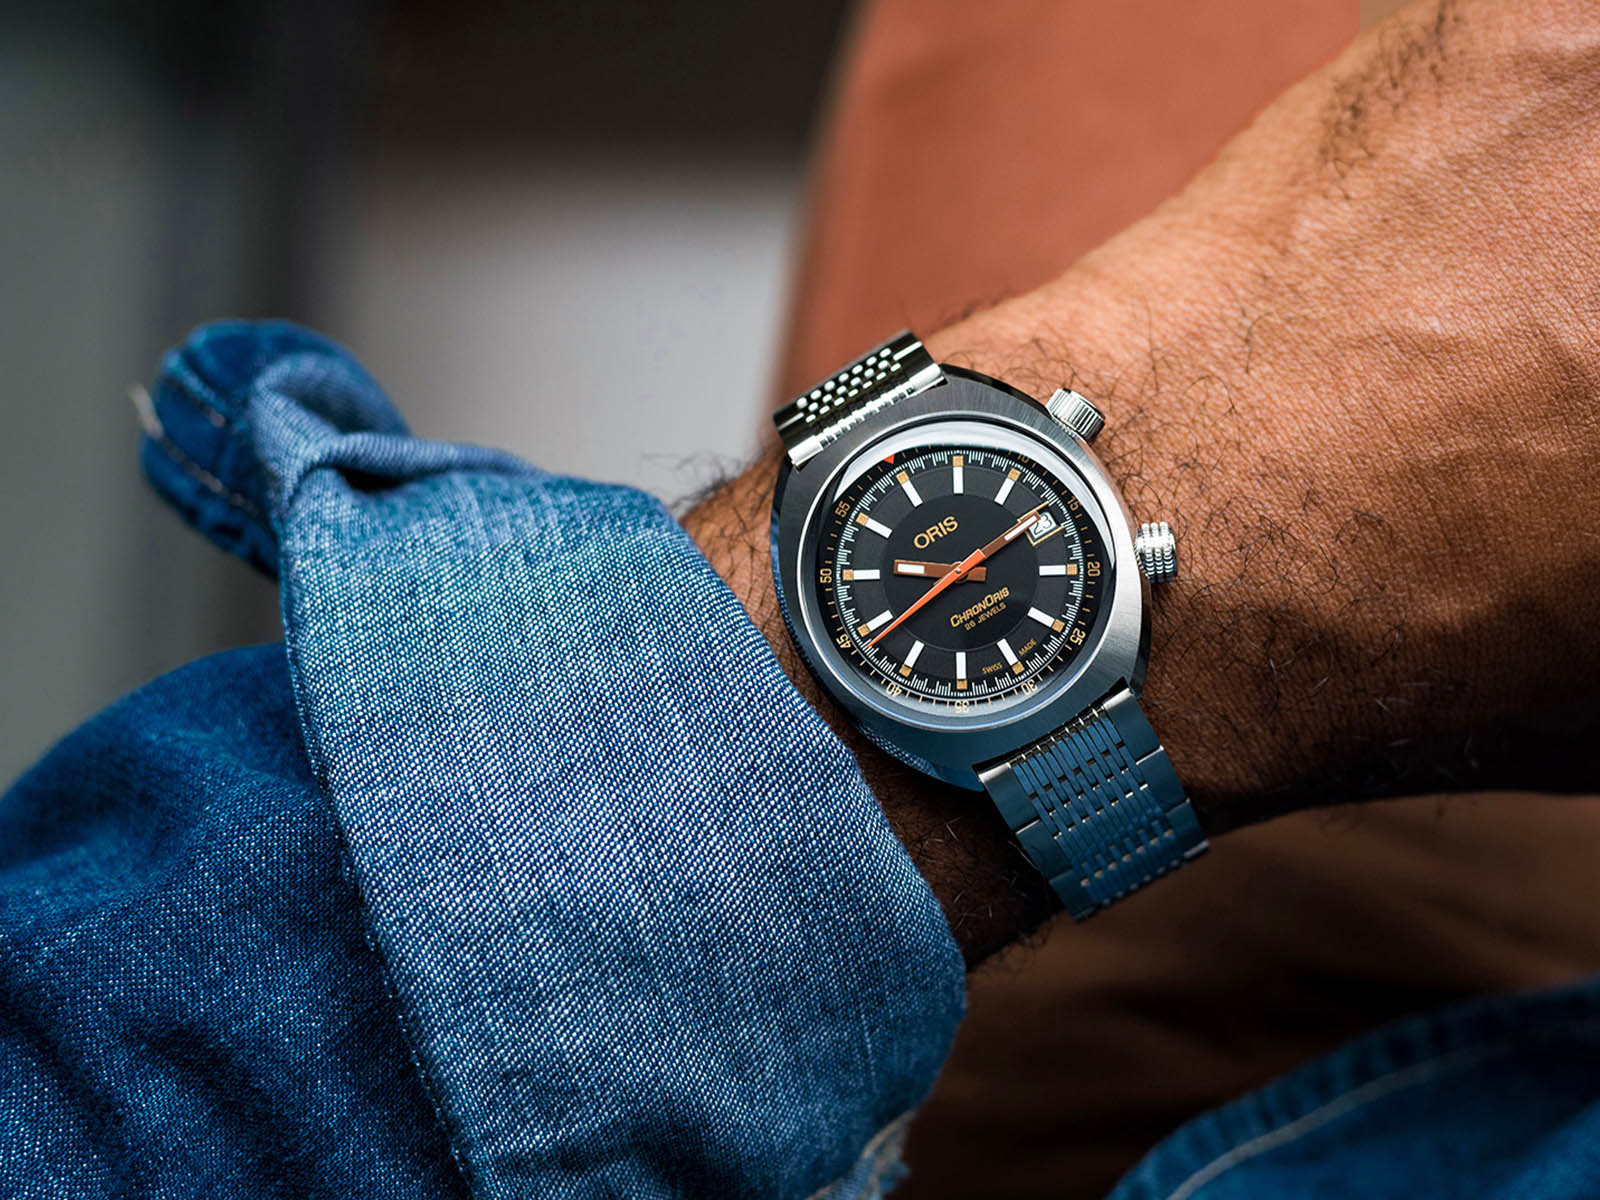 01-733-7737-4034-set-mb-oris-chronoris-movember-edition-2019-6.jpg